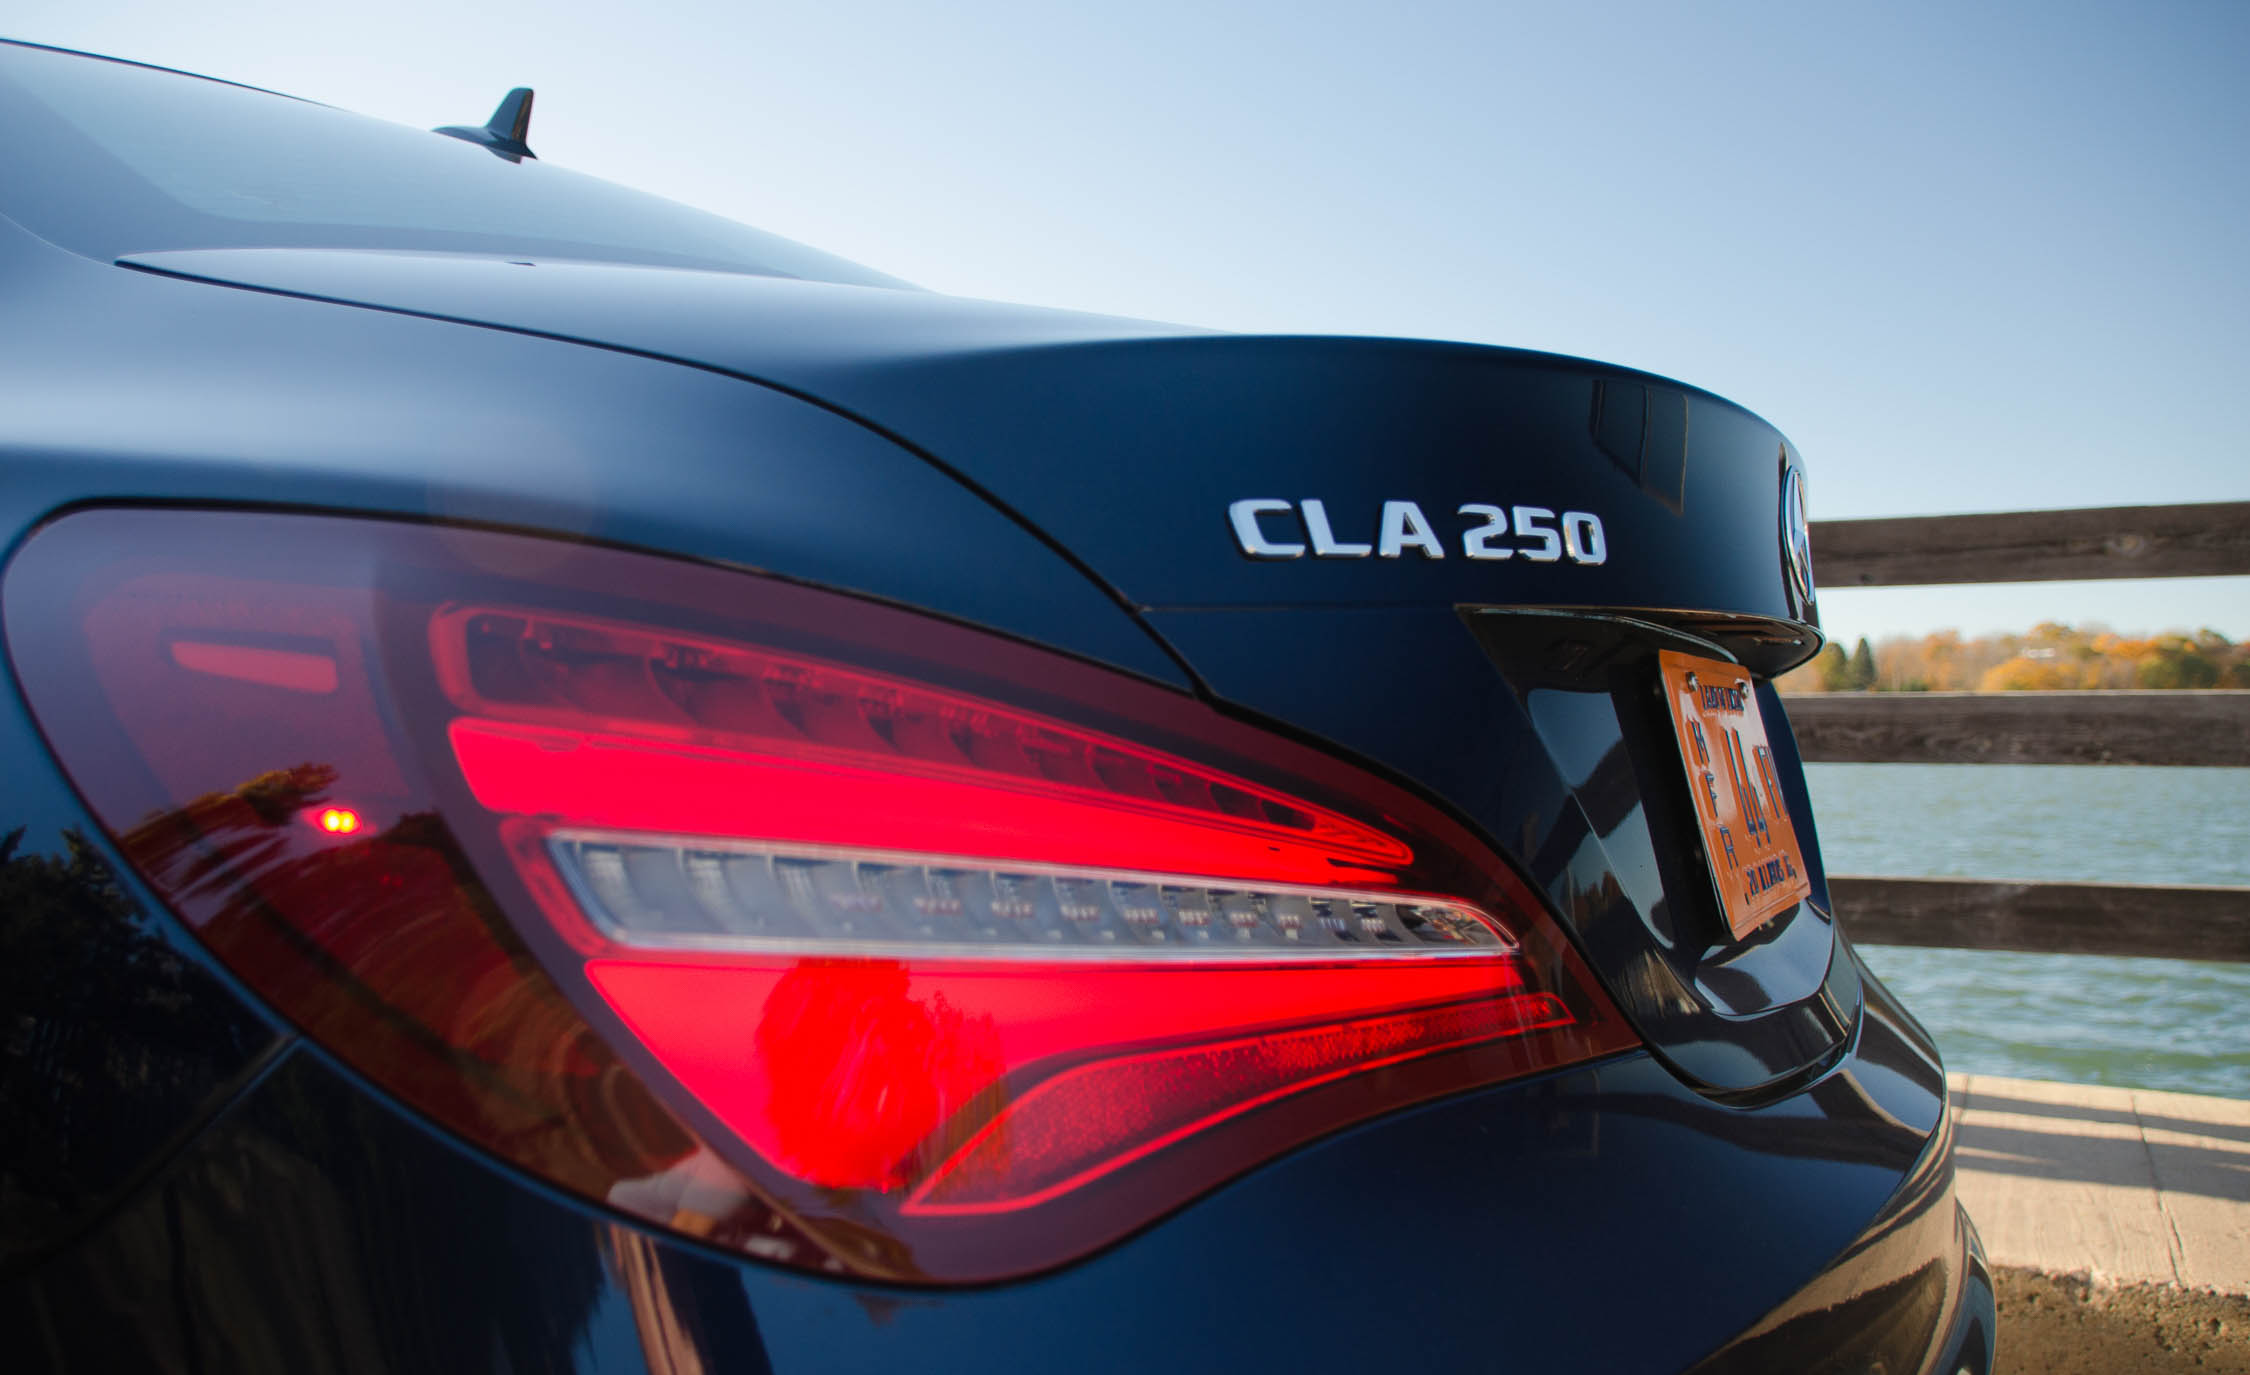 2017 Mercedes Benz CLA250 4MATIC Exterior View Taillight (Photo 15 of 21)